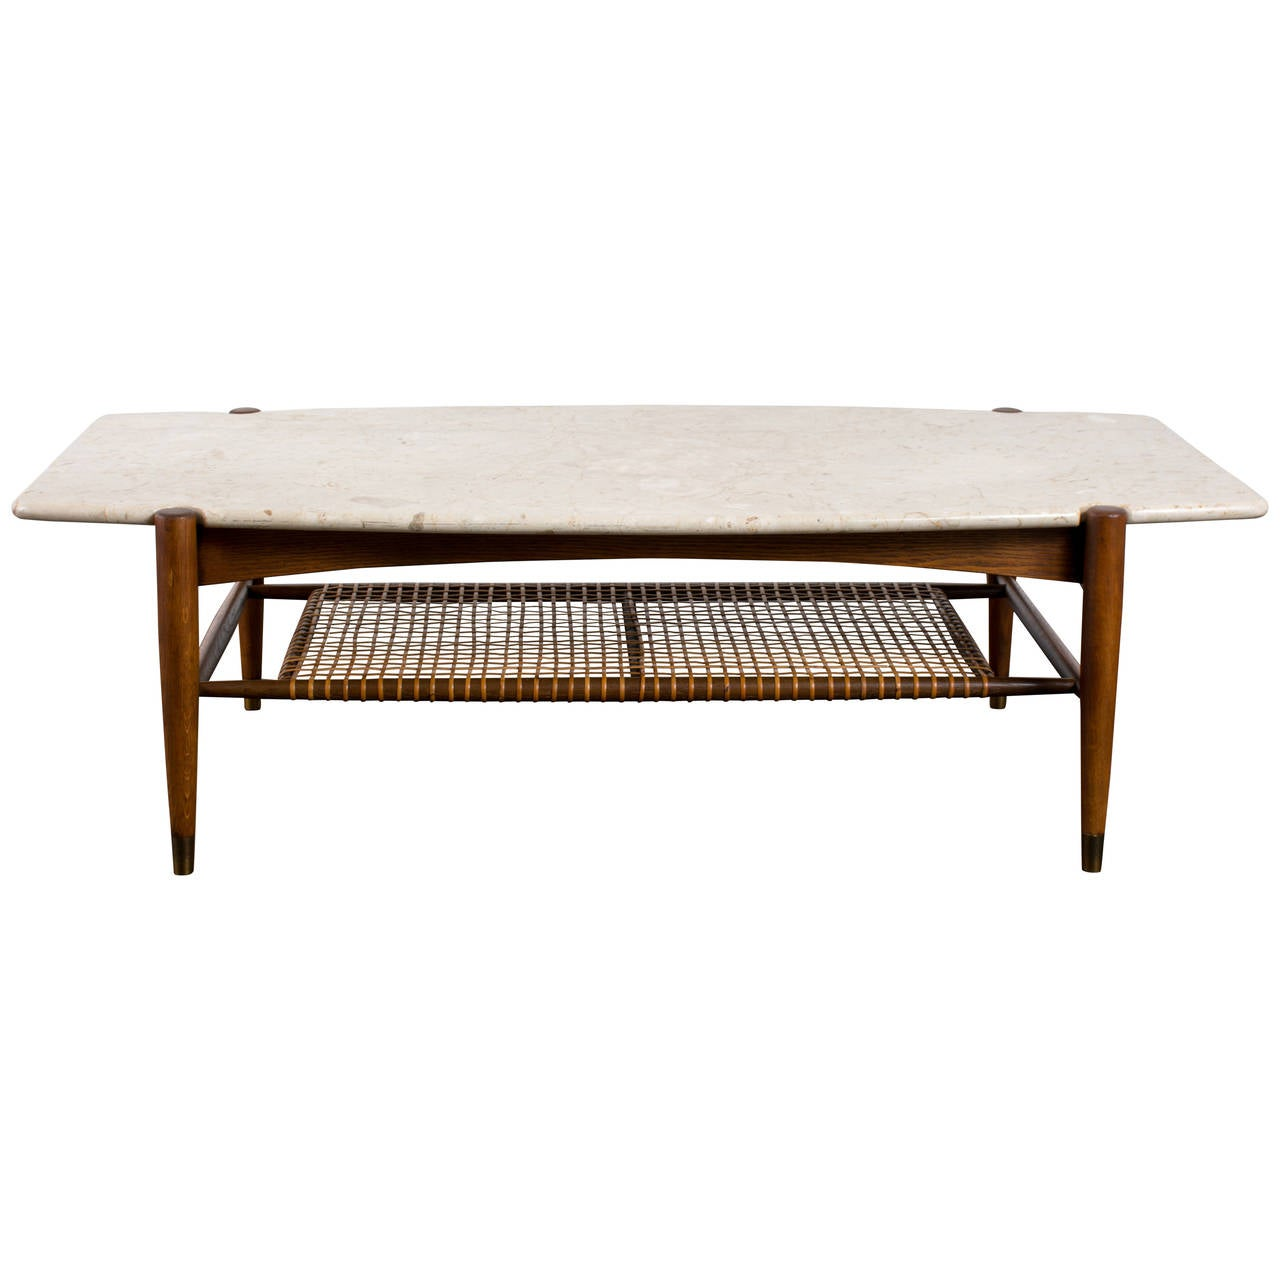 Vintage Mid Century Coffee Table By Folke Ohlsson At 1stdibs